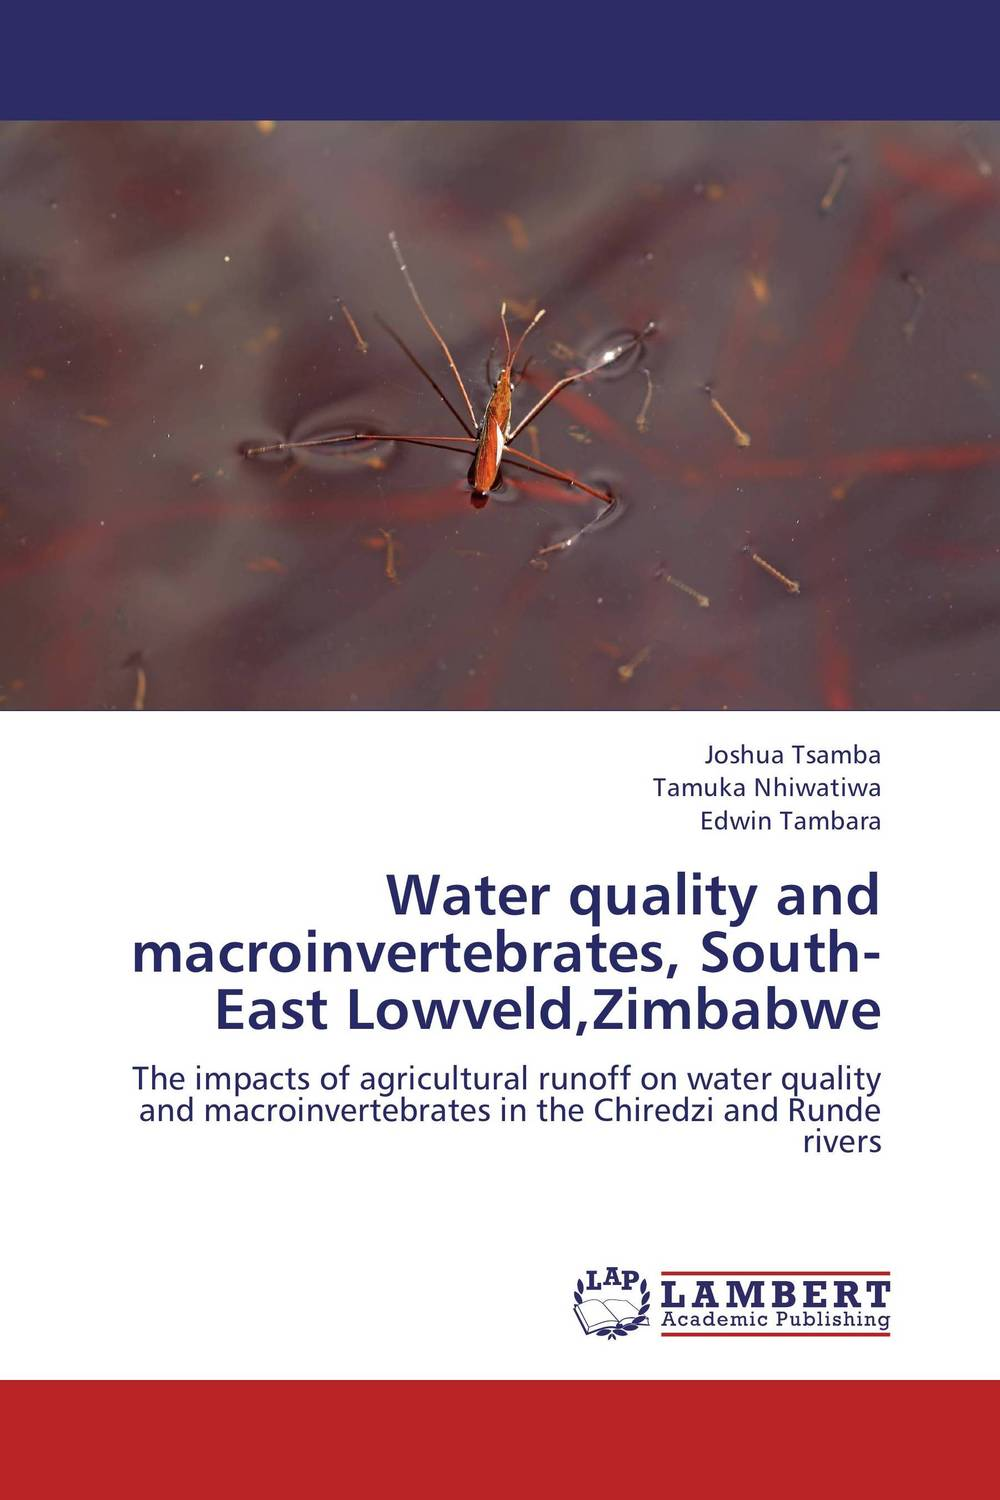 Water quality and macroinvertebrates, South-East Lowveld,Zimbabwe biomonitoring with clarias gariepinus